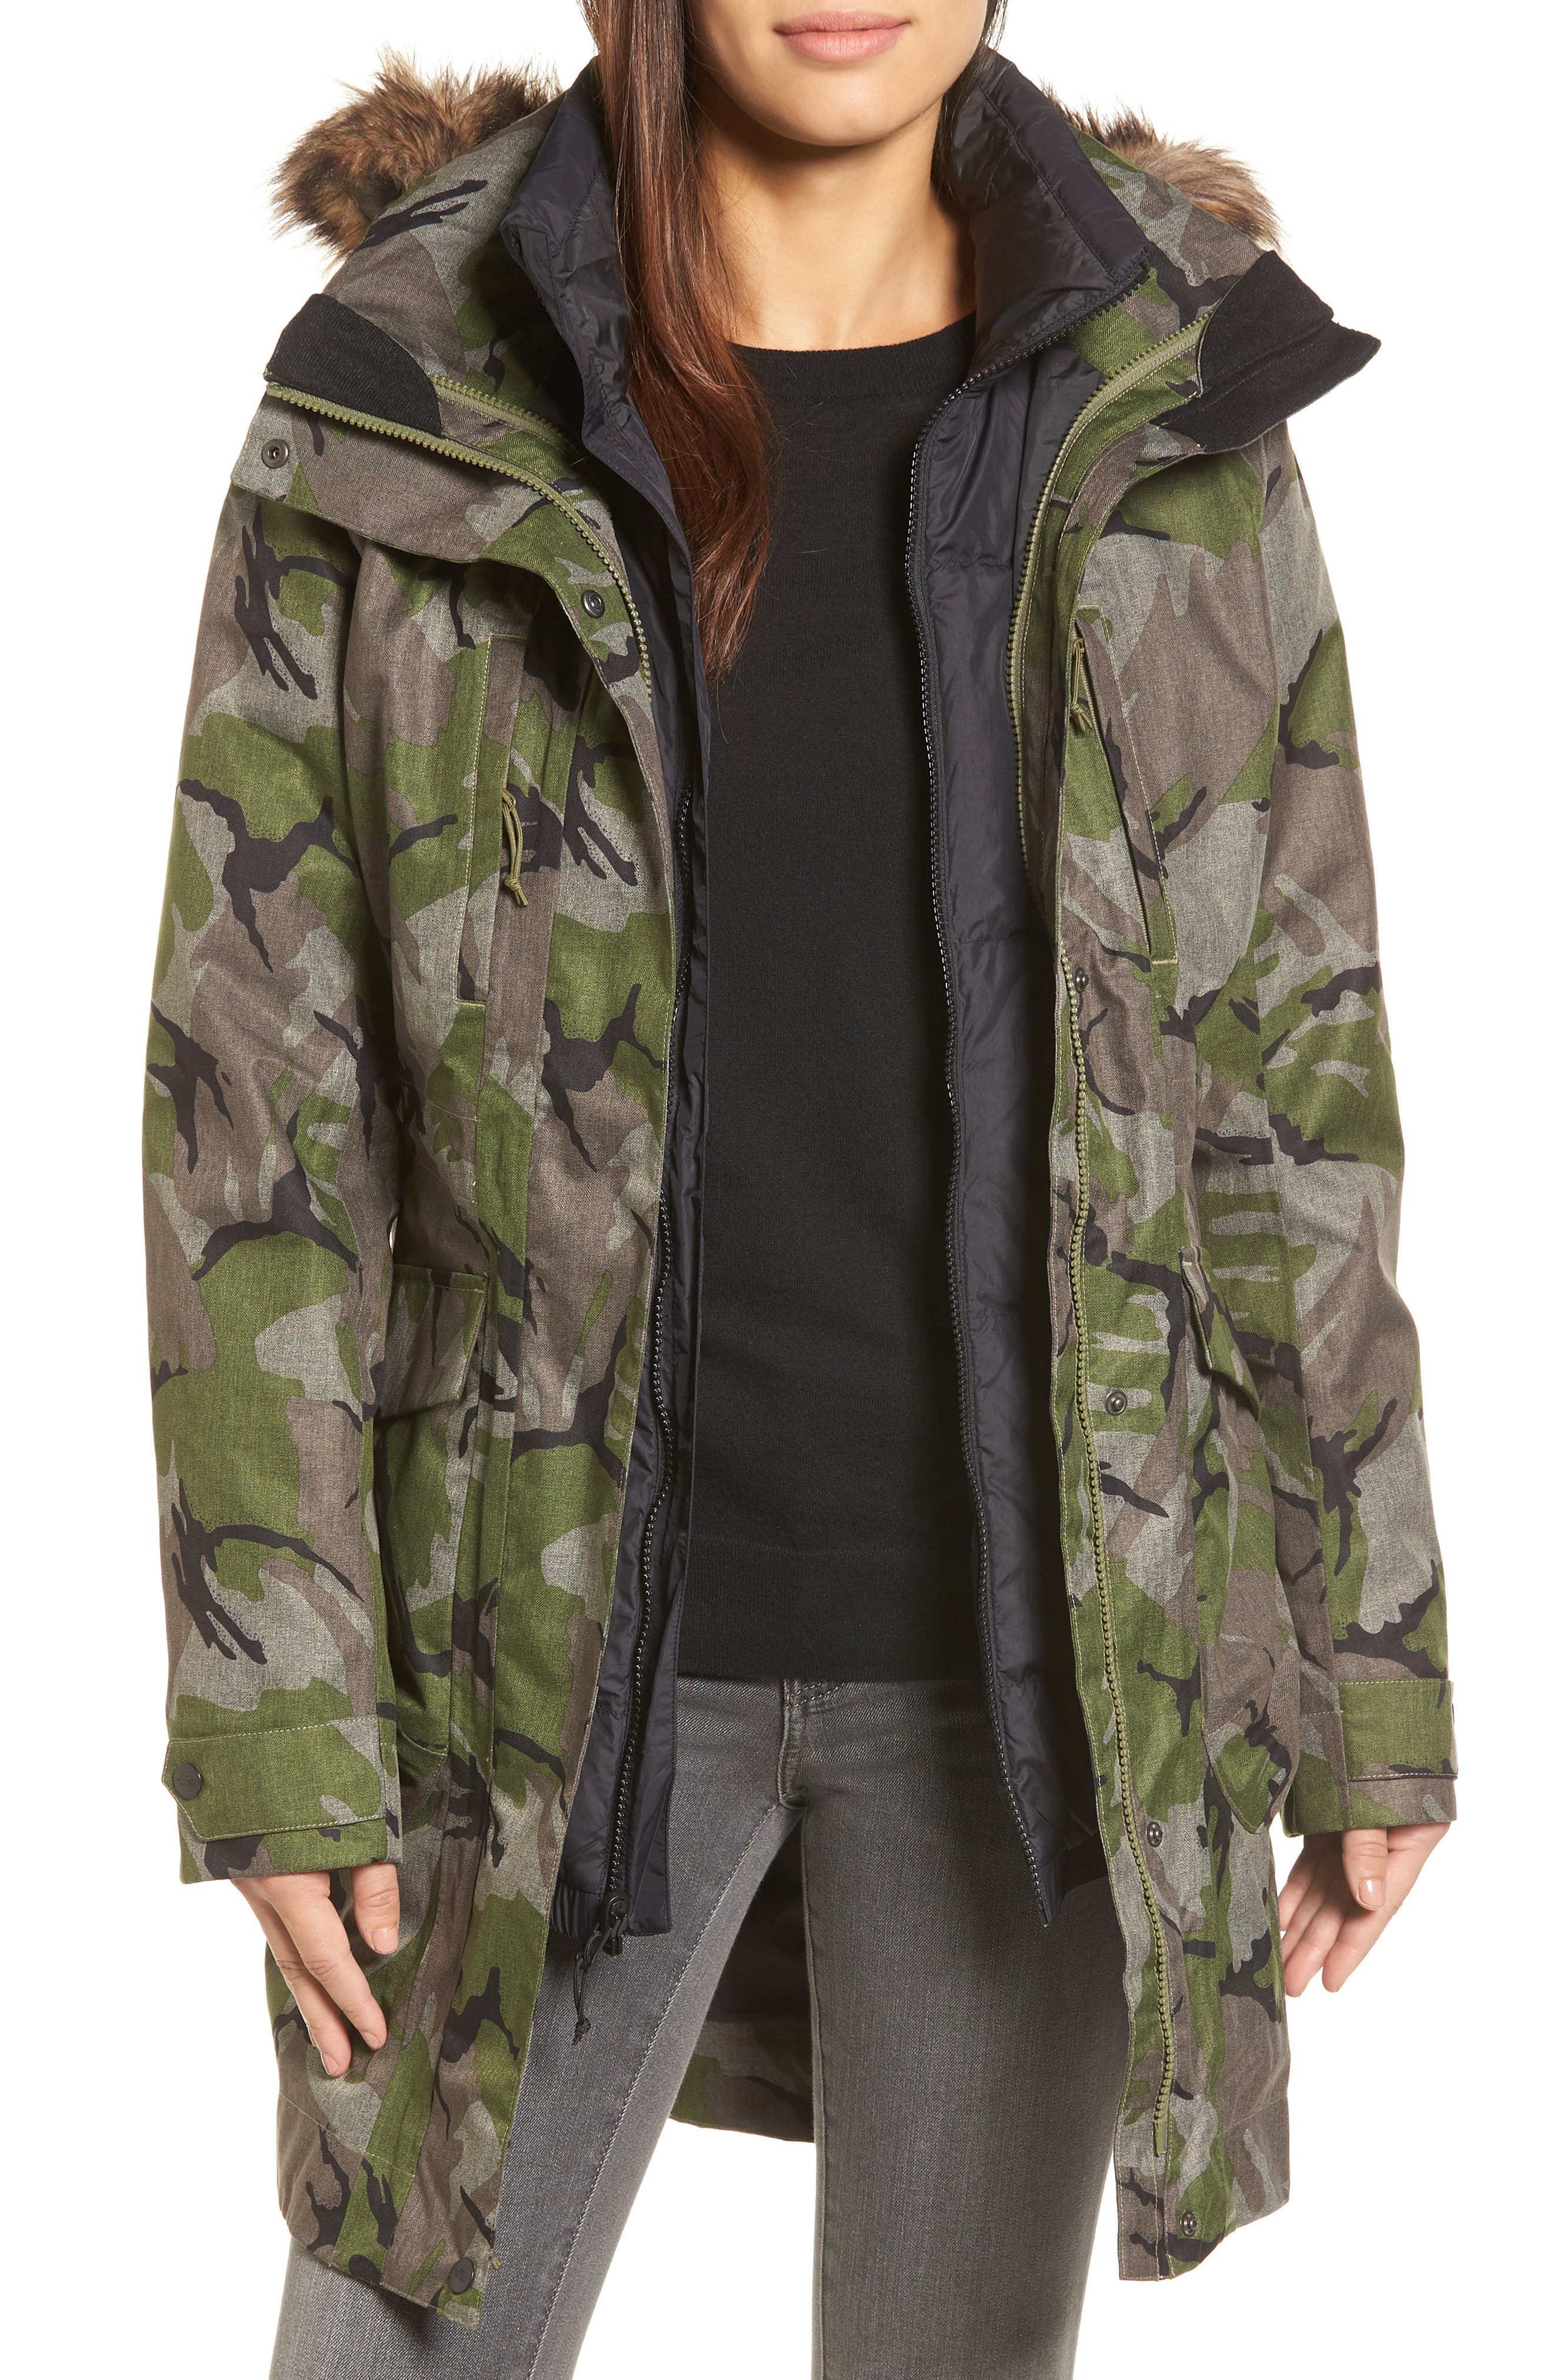 Outer Boroughs 3-in-1 TriClimate<sup>®</sup> Waterproof Jacket with Faux Fur Trim,                         Main,                         color, Burnt Olive Green Disrupt Camo